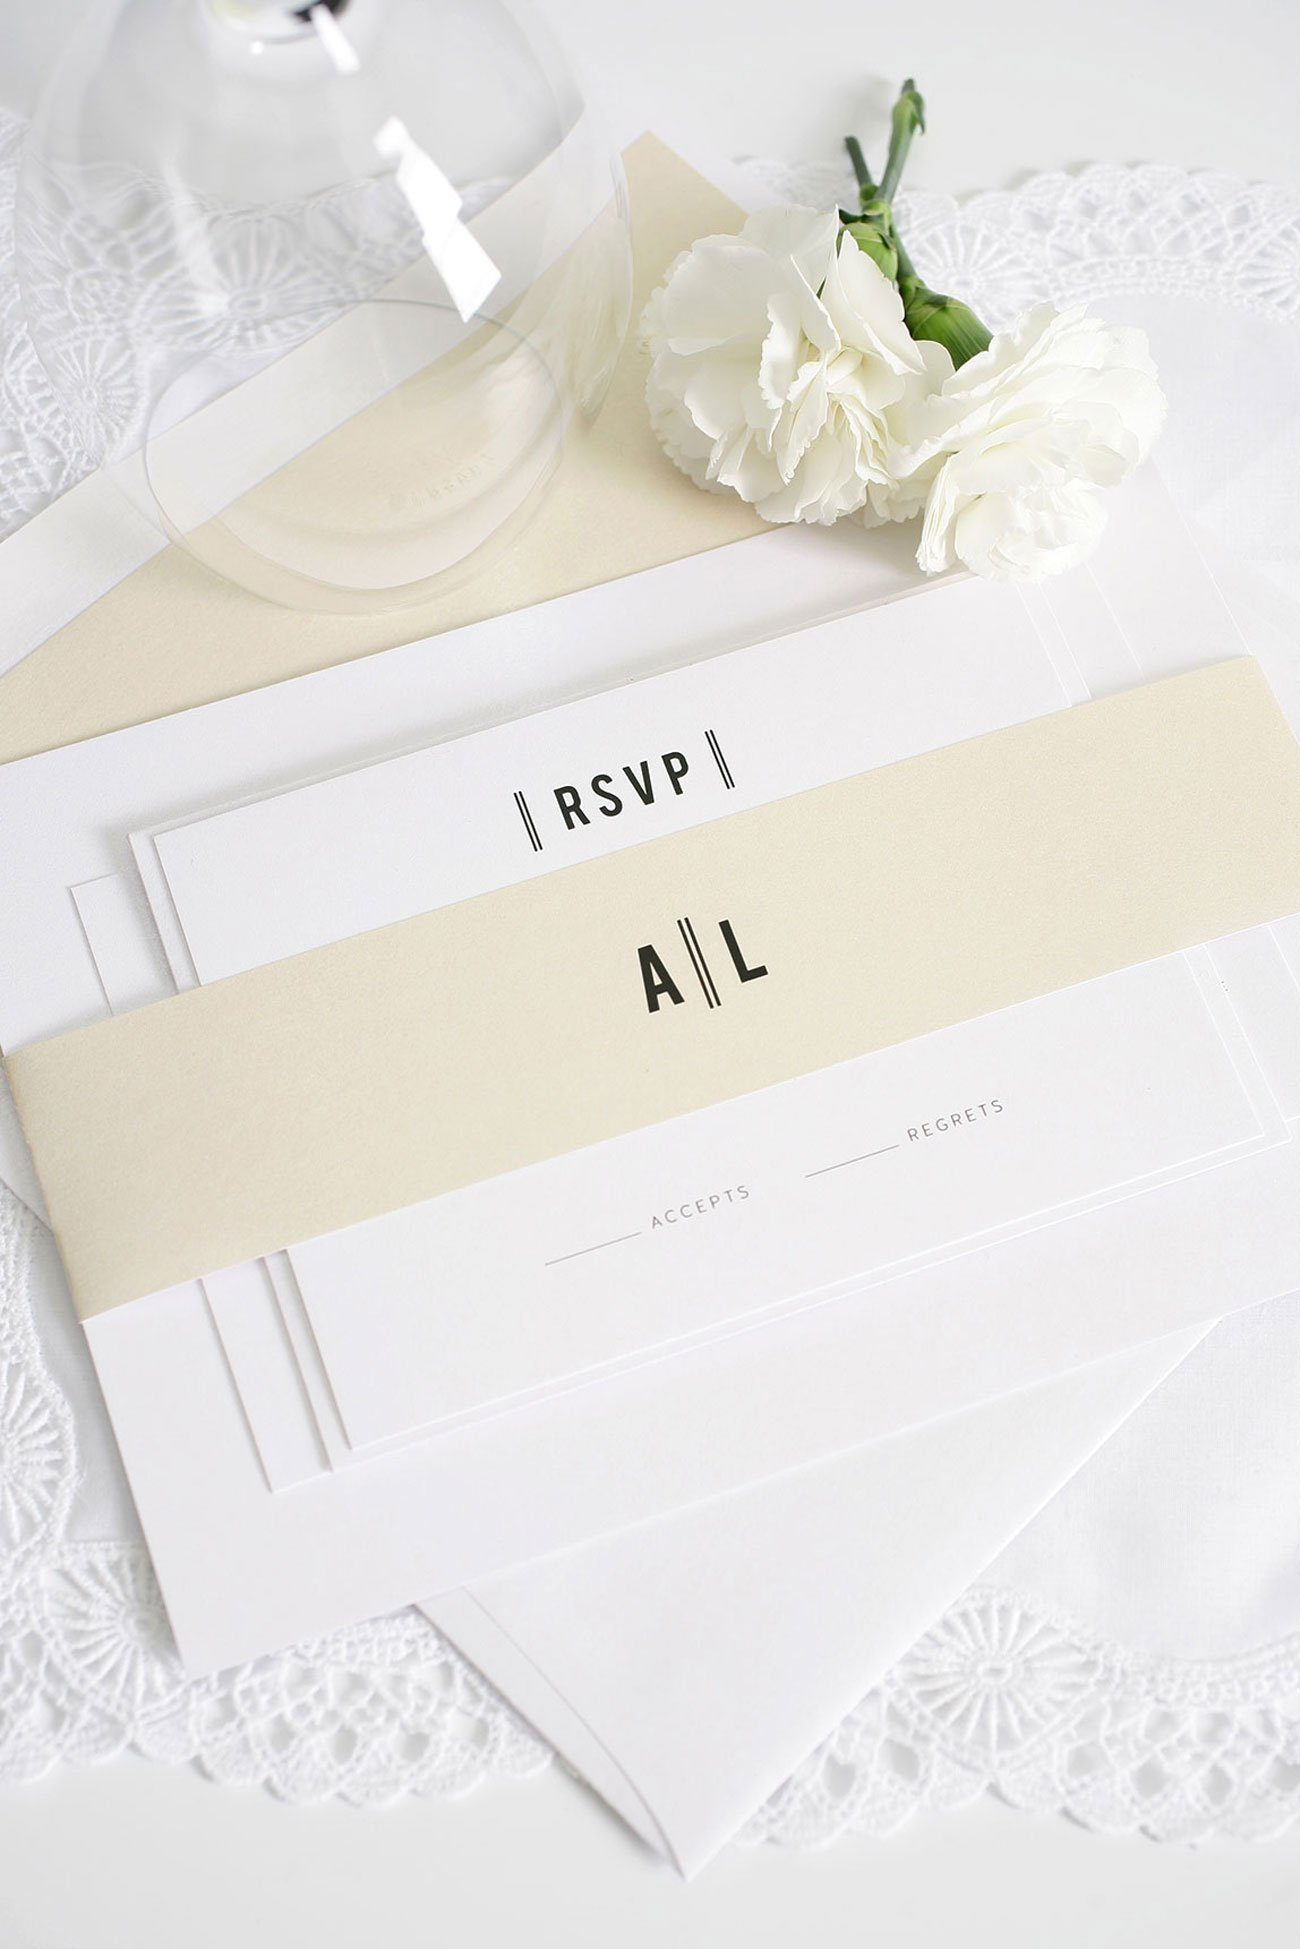 Urban Champagne wedding invitations